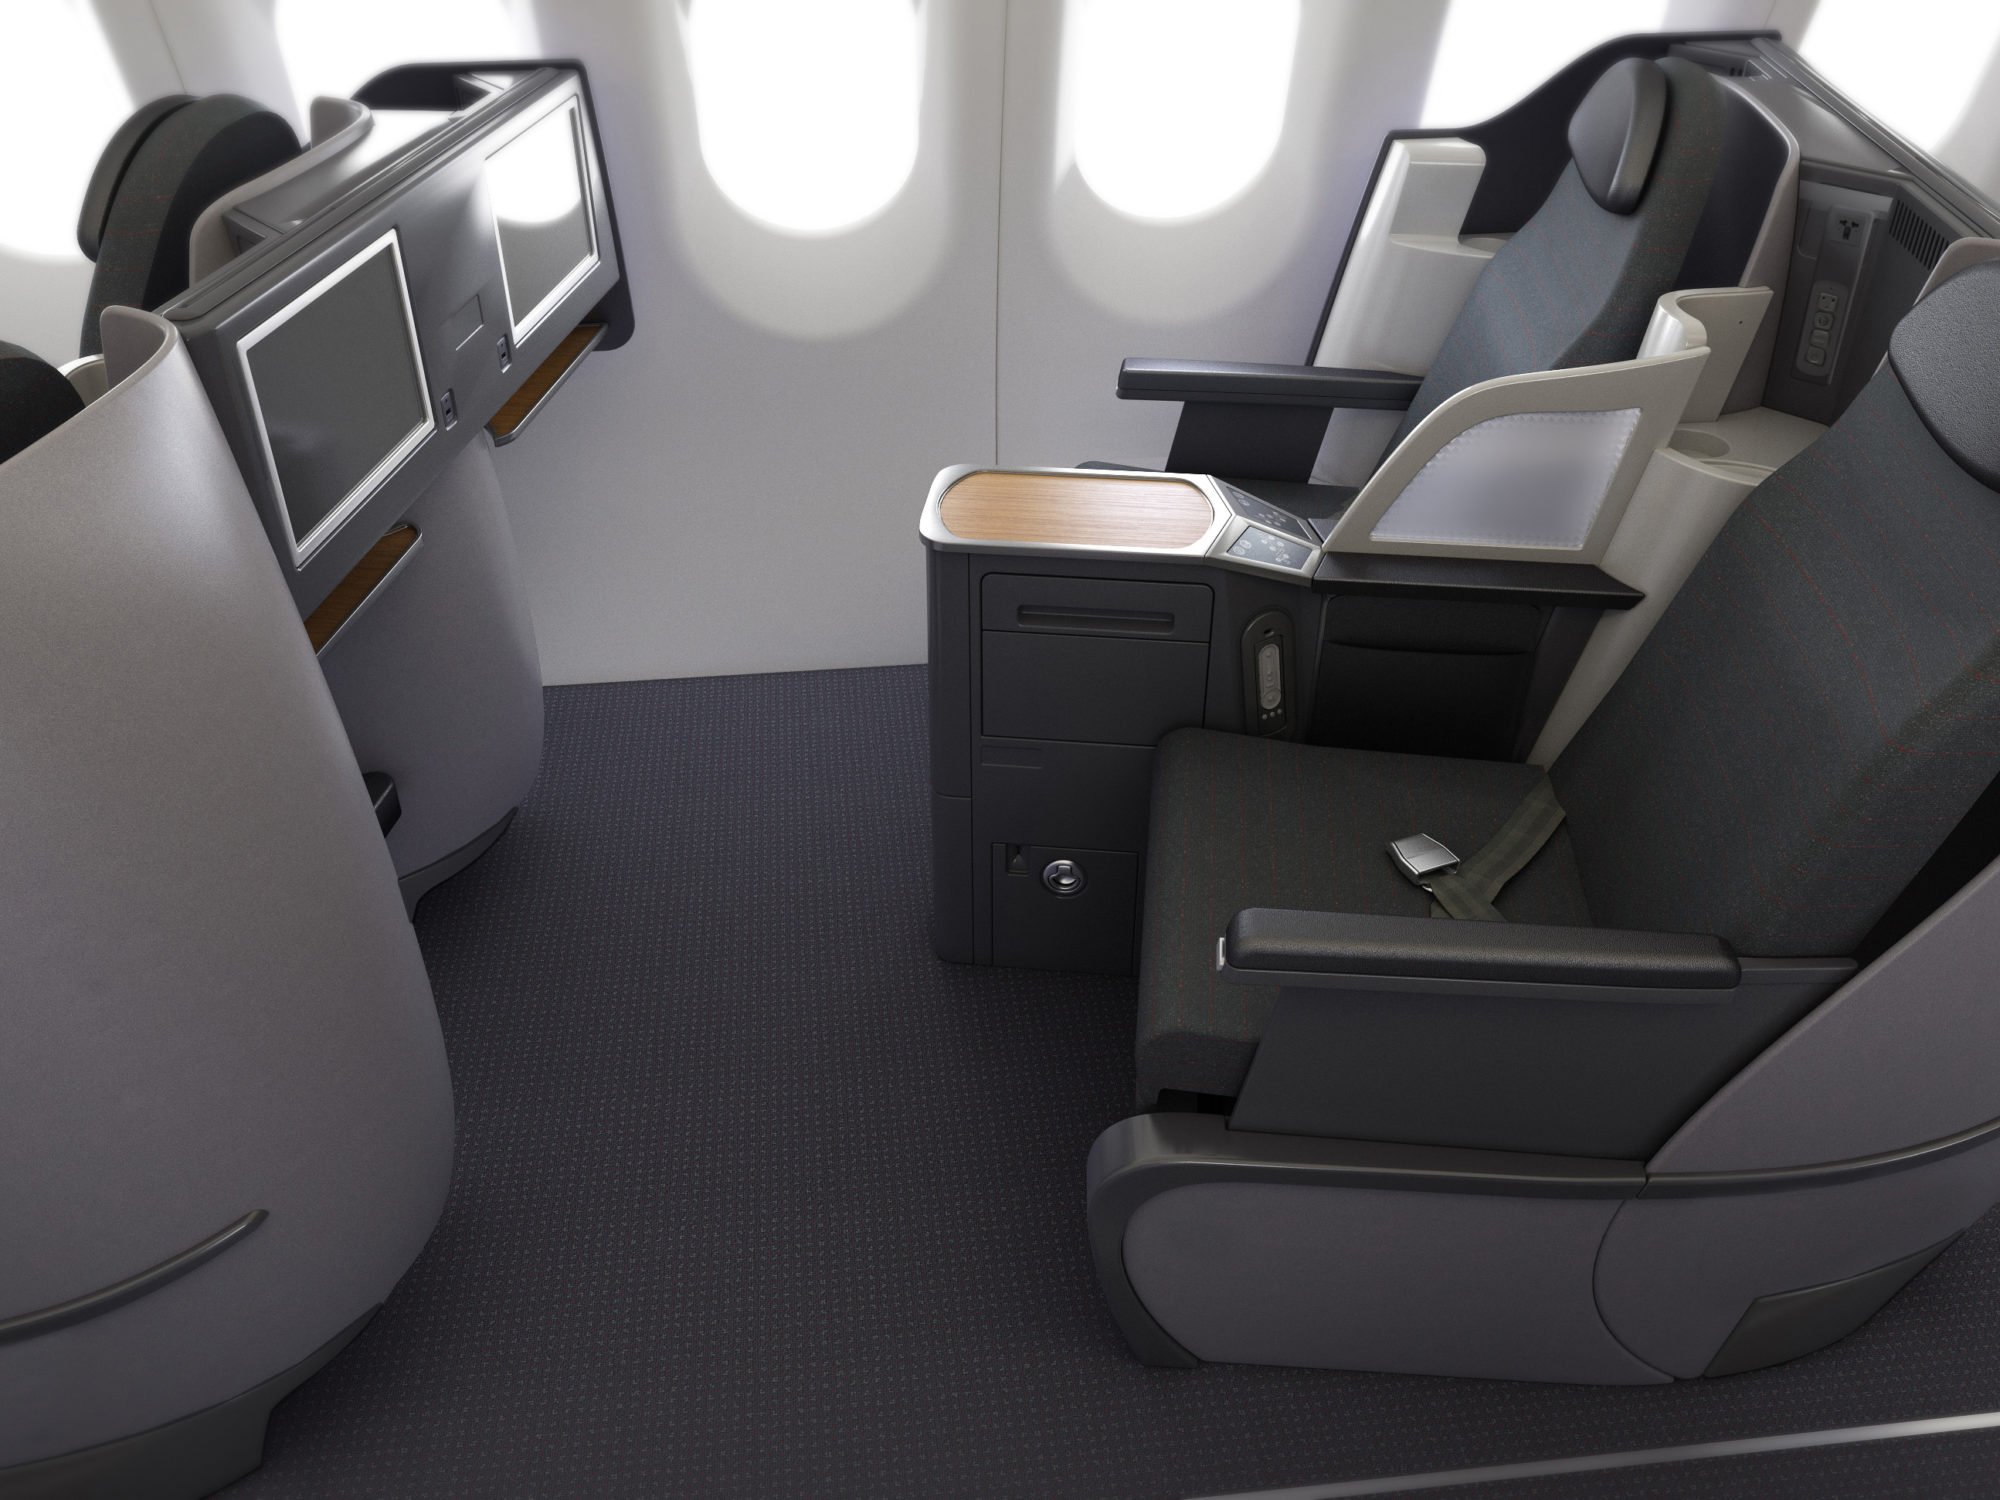 American Airlines Business Class A321